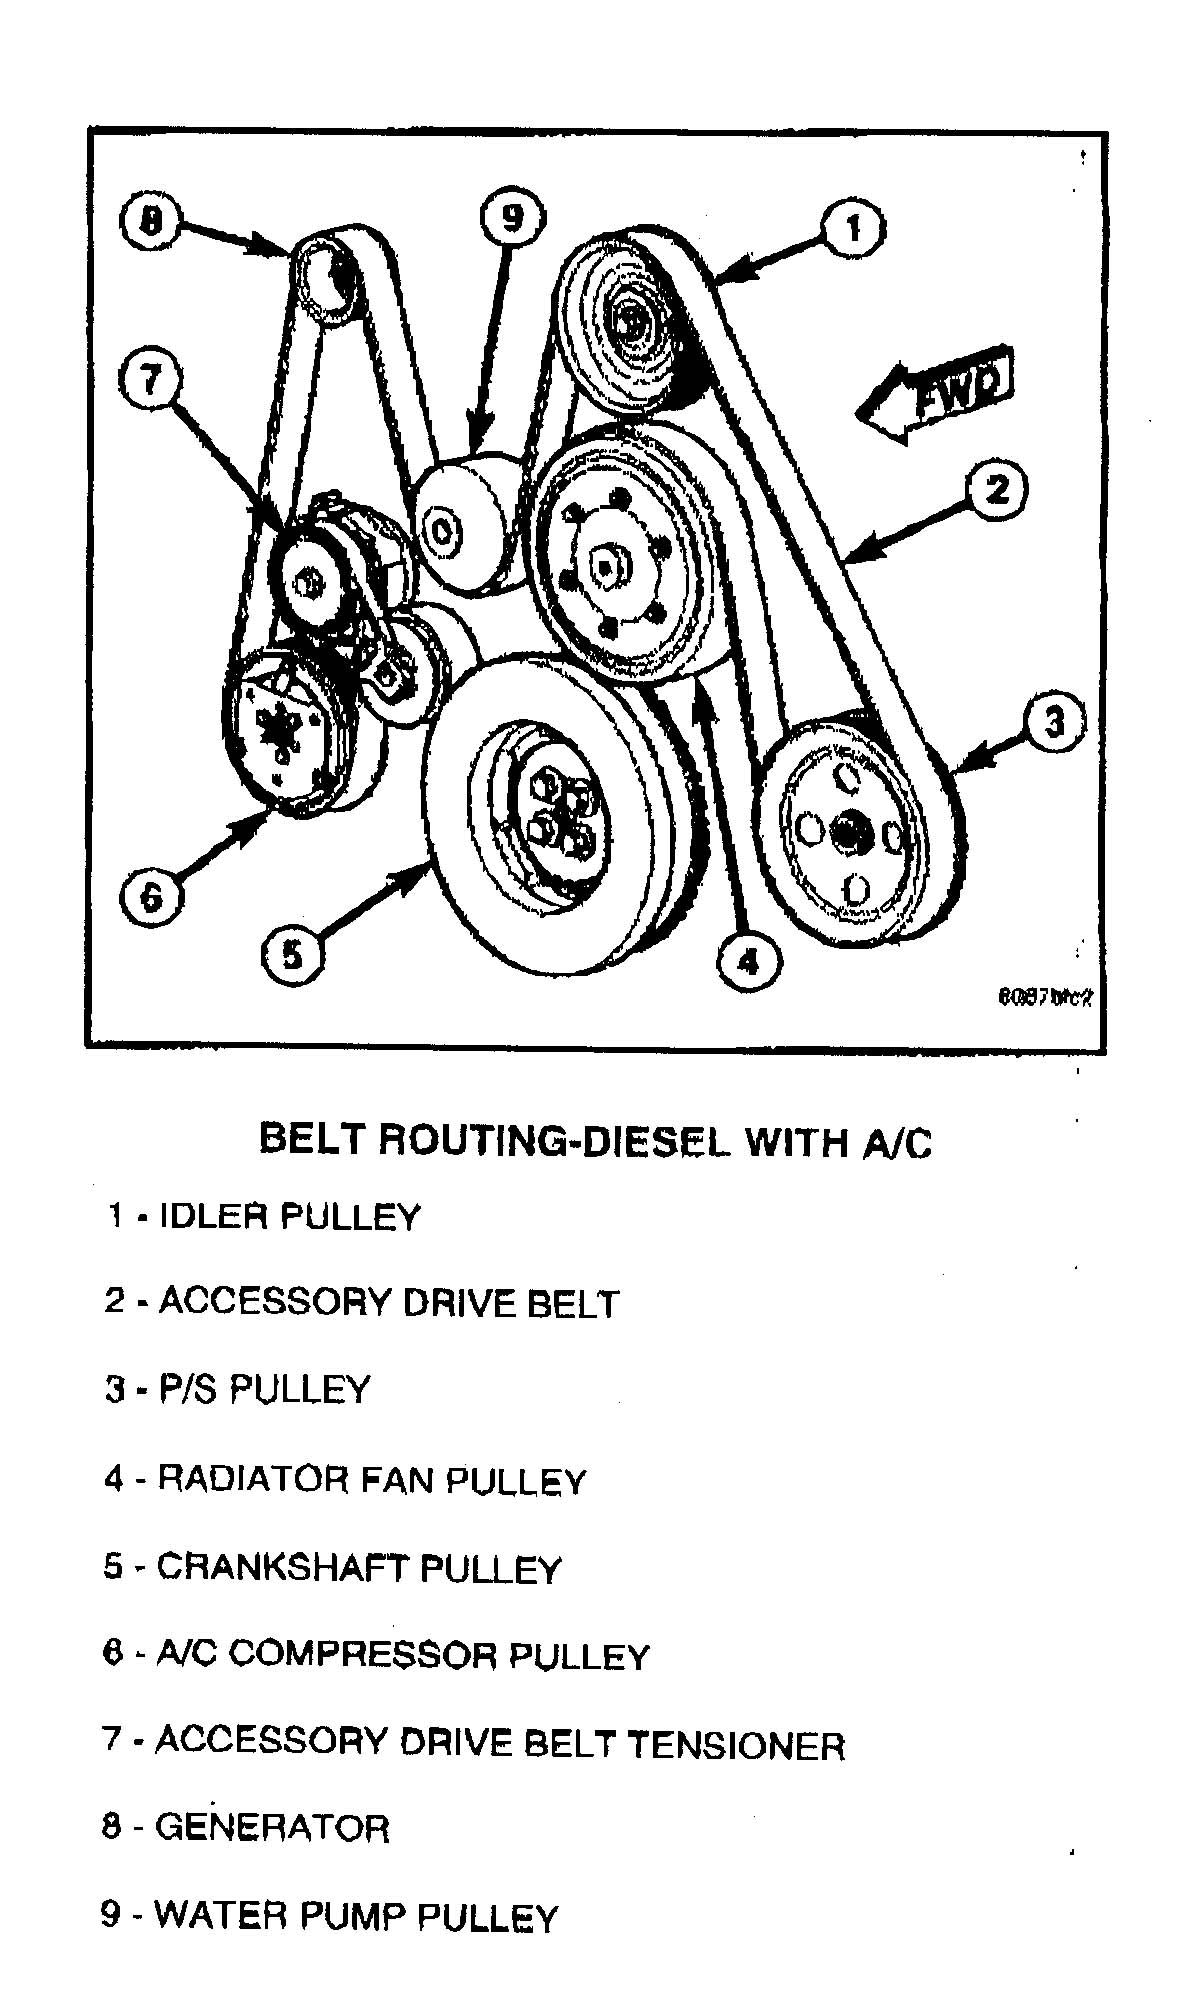 6 7 belt routing diagram dodge diesel diesel truck resource 2012 dodge ram 2500 6 7 serpentine belt diagram [ 1197 x 2013 Pixel ]